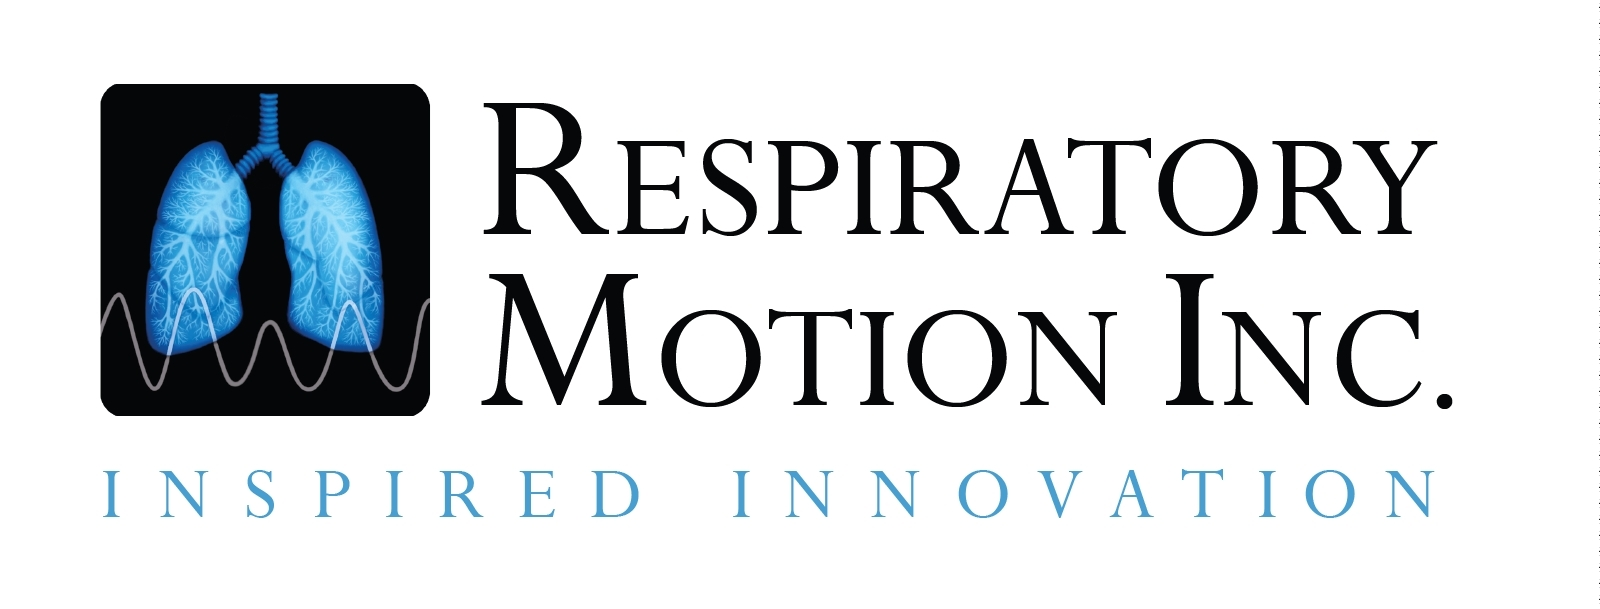 Waltham, MA    2012, Biotech    Respiratory Motion  is a medical device company focusing on the development and commercialization of innovative devices to monitor respiratory variation. Their lead product is the first non-invasive, point-of-care monitor to deliver a real-time, quantitative measurement of the adequacy of breathing.